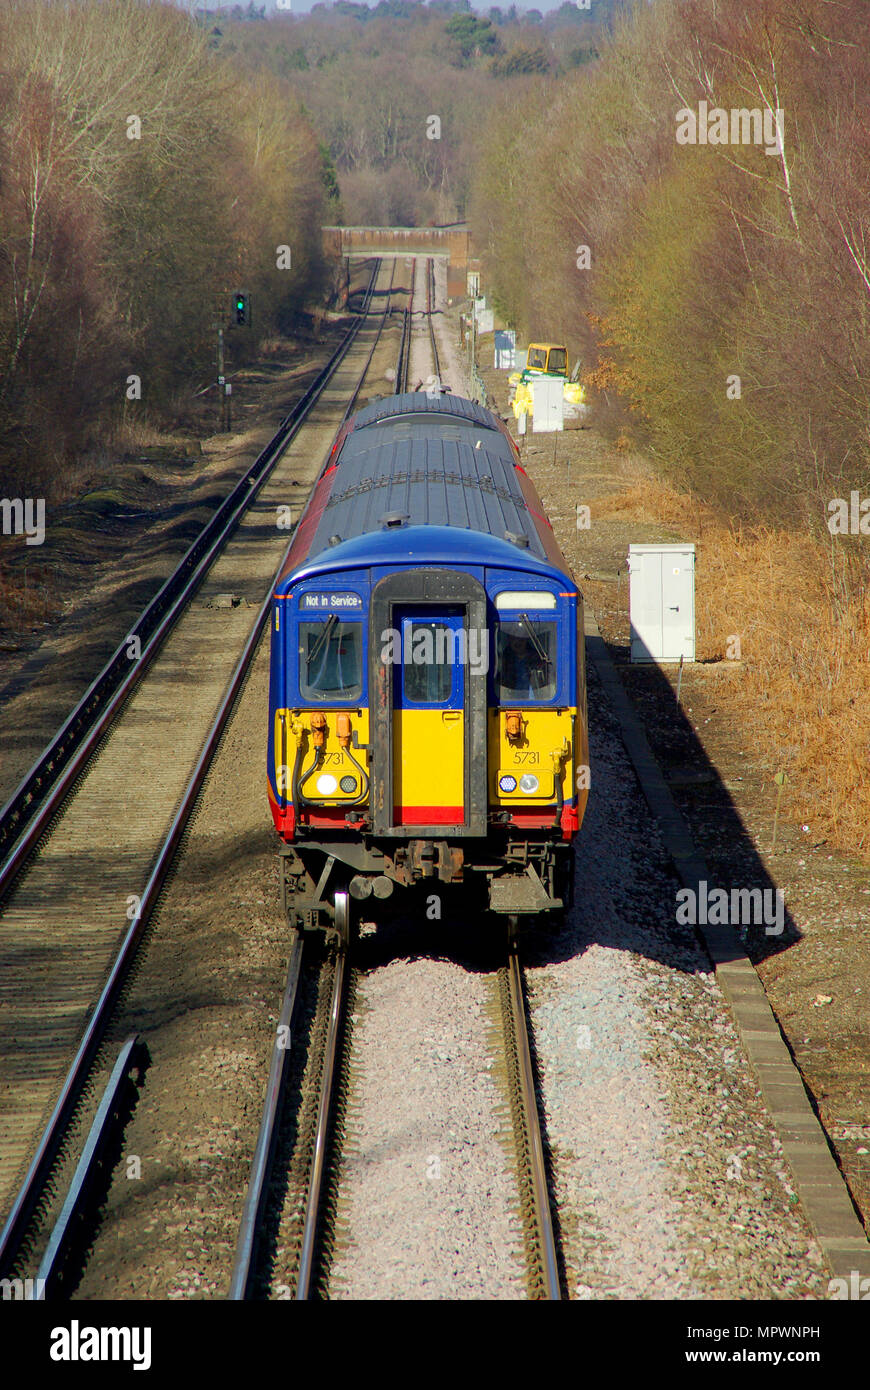 South West Trains SWT railway owned by Stagecoach, operator of the South Western Railway franchise 1996 to 2017. British Rail Class 455 is an emu - Stock Image